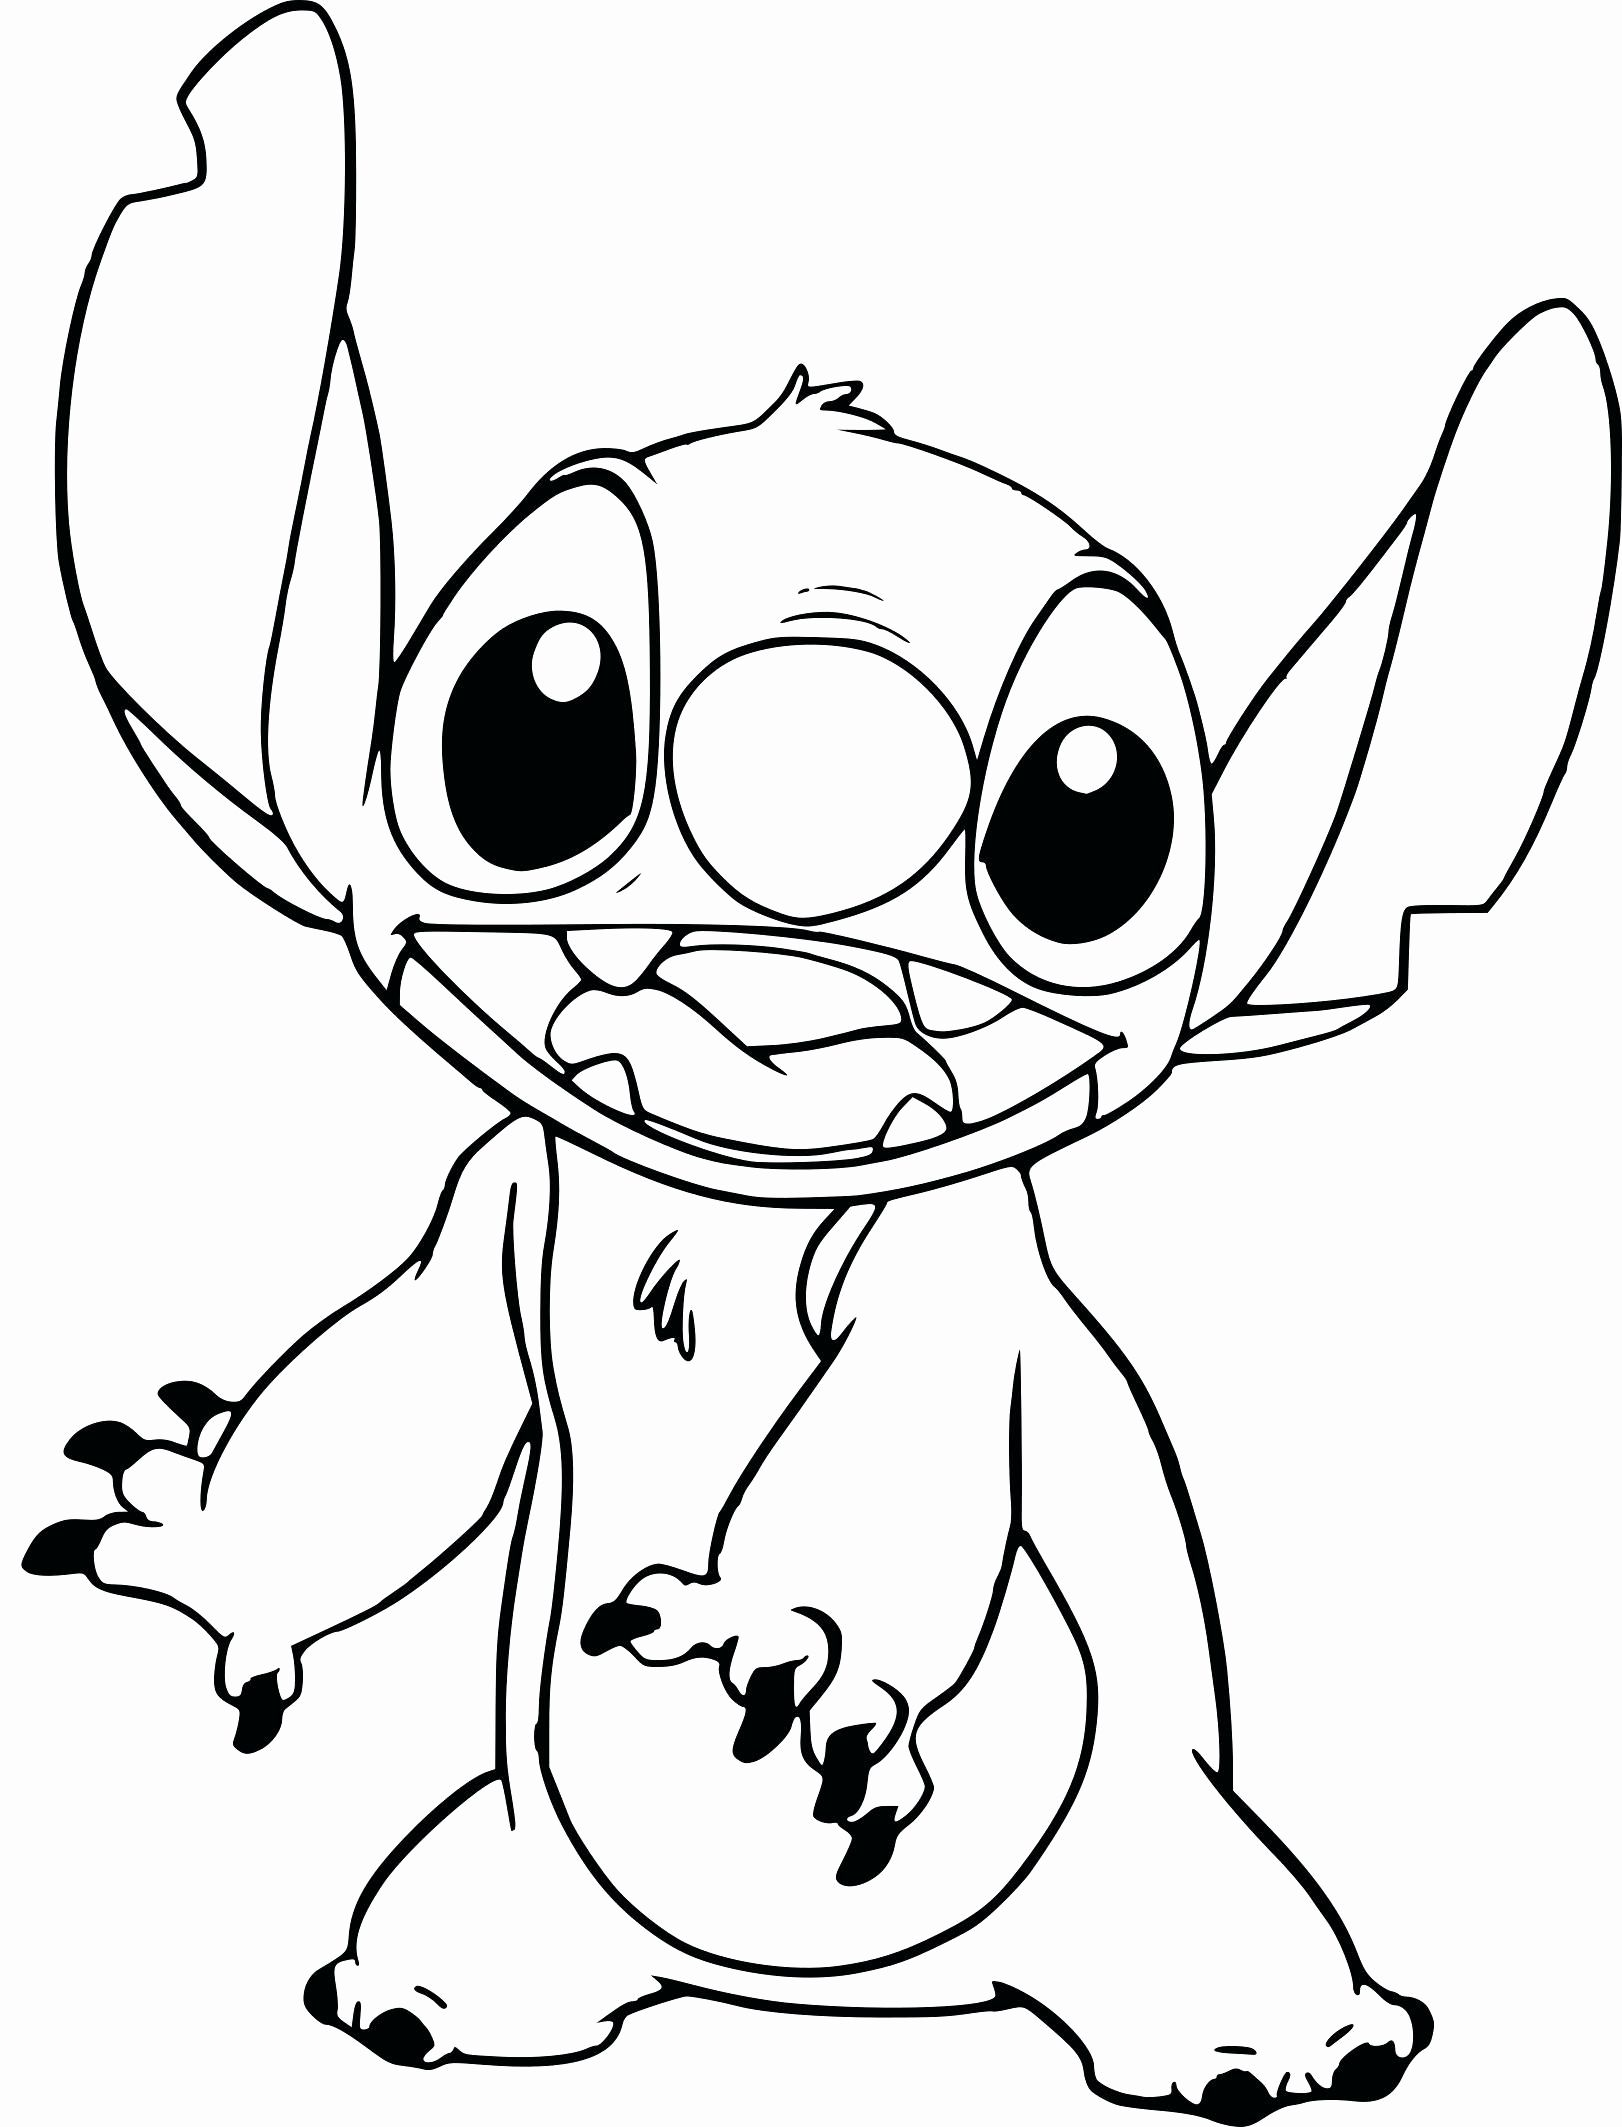 Kids Coloring Pages Disney Angel And Stich Cute Coloring Pages Disney Princess Coloring Pages Disney Coloring Pages